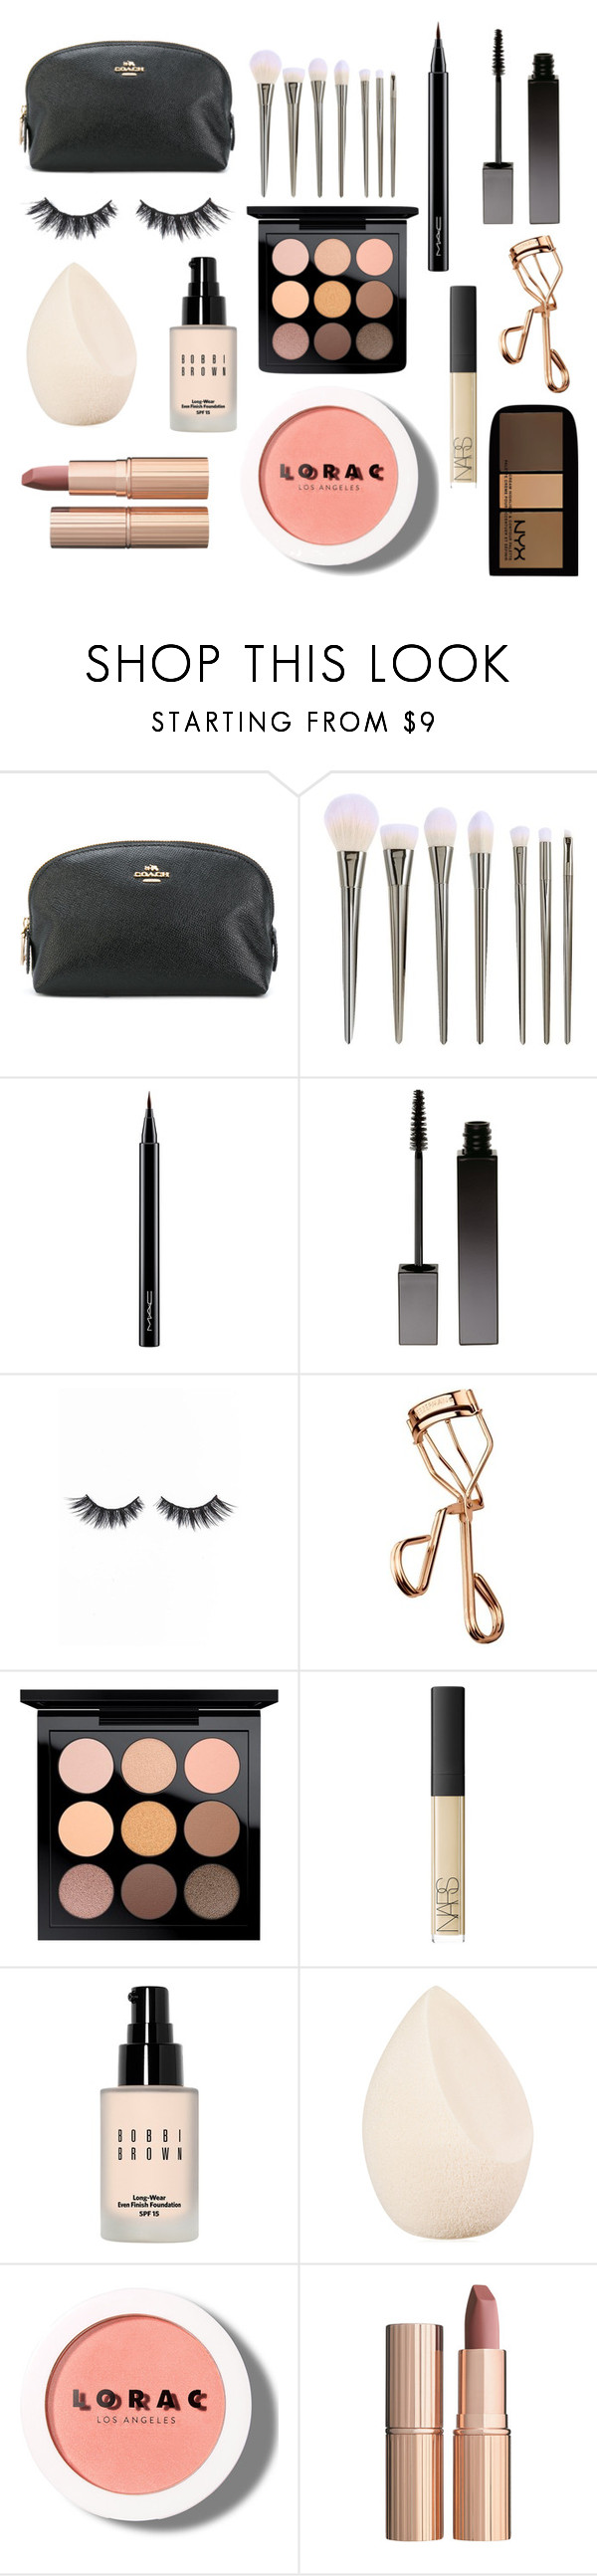 """""""makeup on the go🚗💄"""" by sydneyyb liked on Polyvore"""